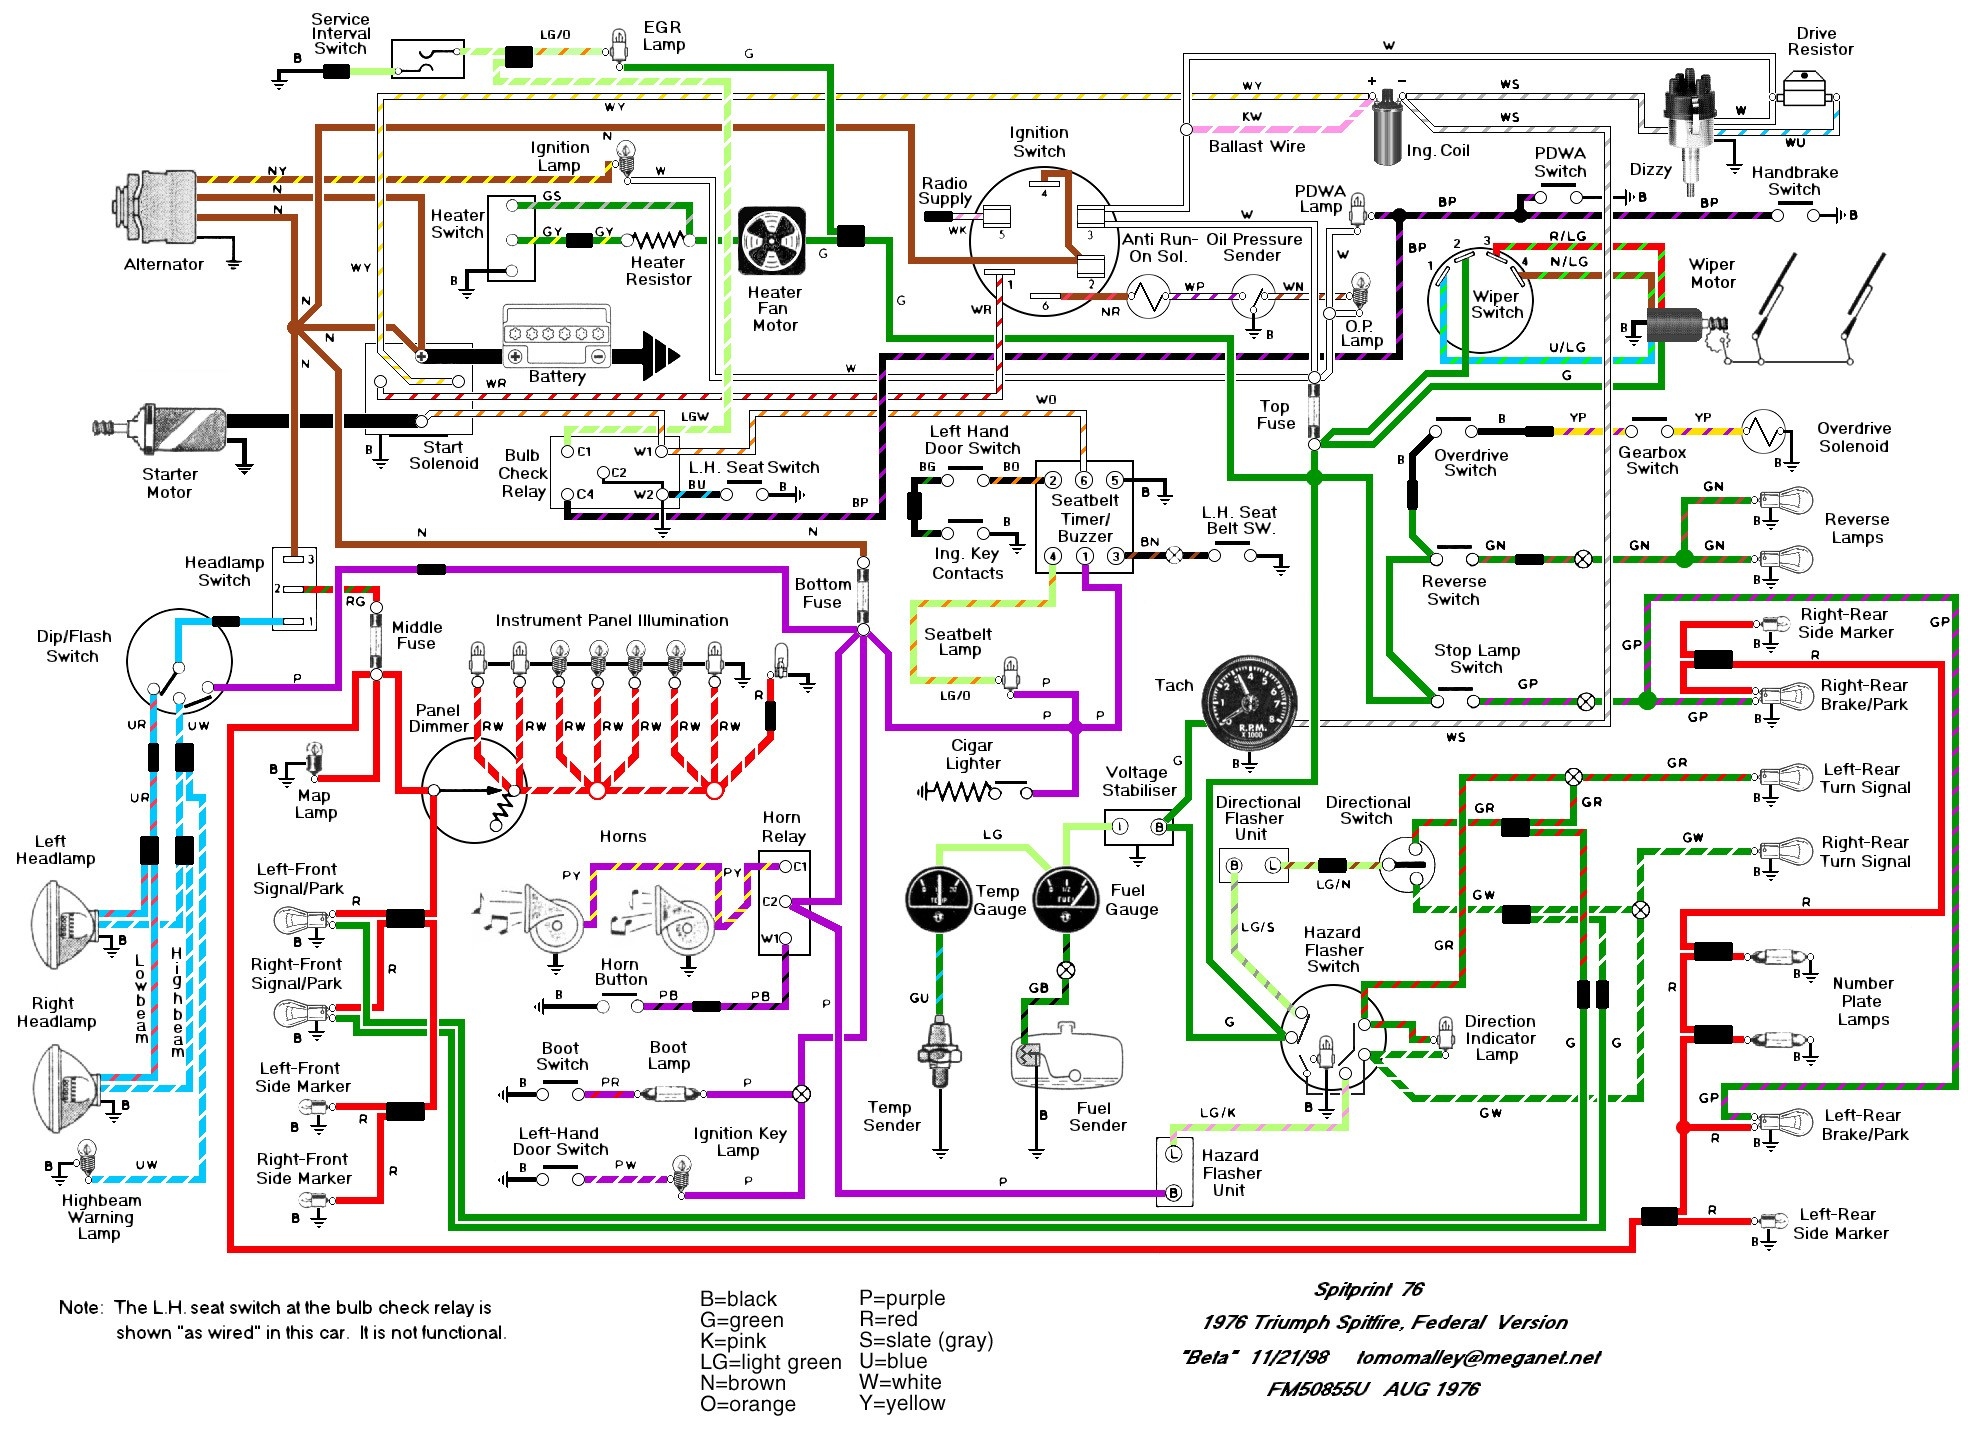 wiring diagram in car auto wiring diagram library wiring diagrams rh saveto co automotive wiring tips techniques Automotive Wiring Harness Connectors